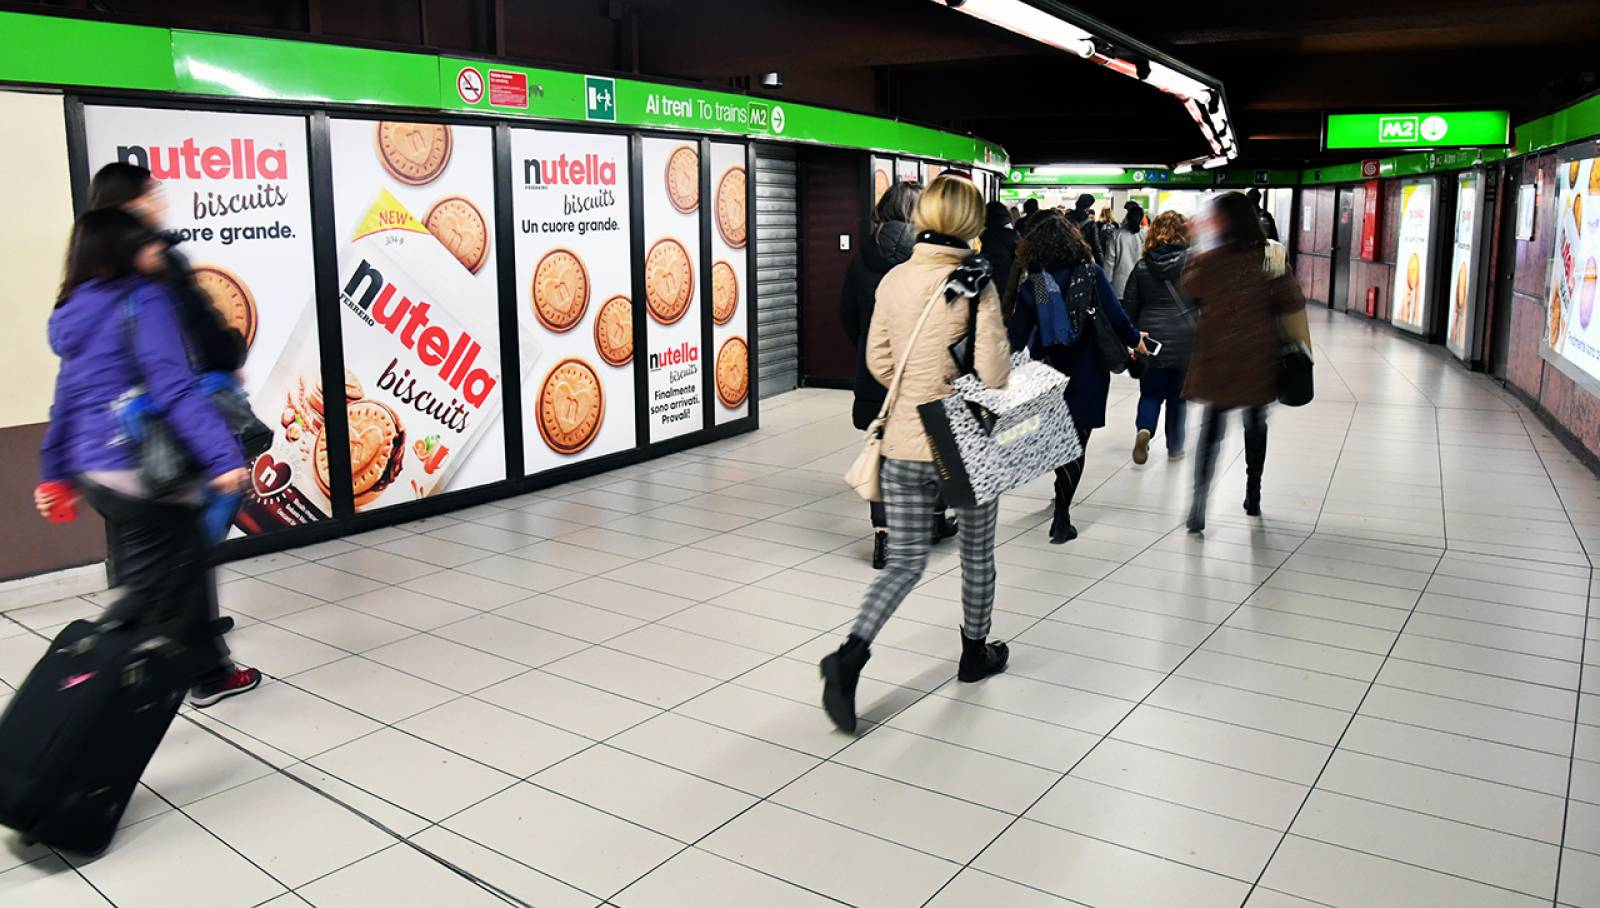 Digital Out of Home IGPDecaux Station Domination in Milan for Ferrero Nutella Biscuits